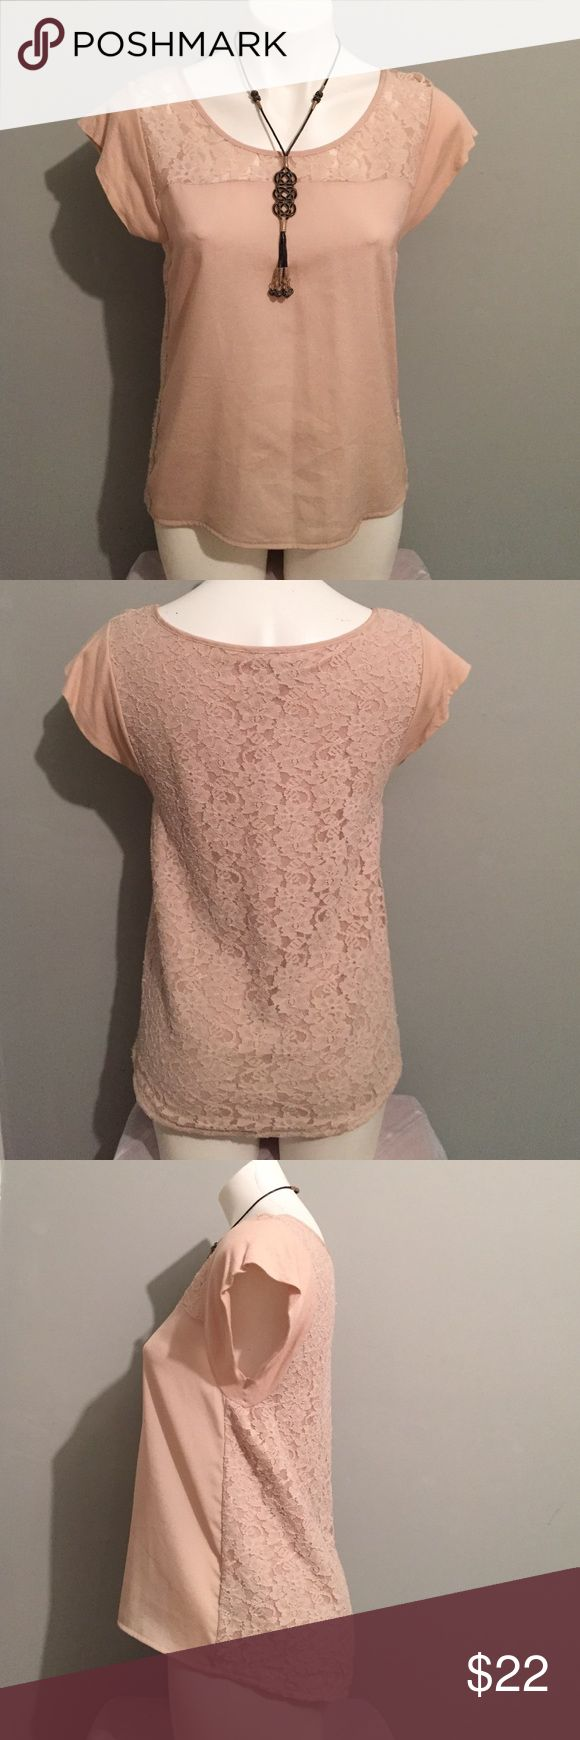 Beautiful top Beautiful top by the Express store. Back and front area has lace as shown.  Used very gently in good condition. Back longer then front as shown. Express Tops Blouses